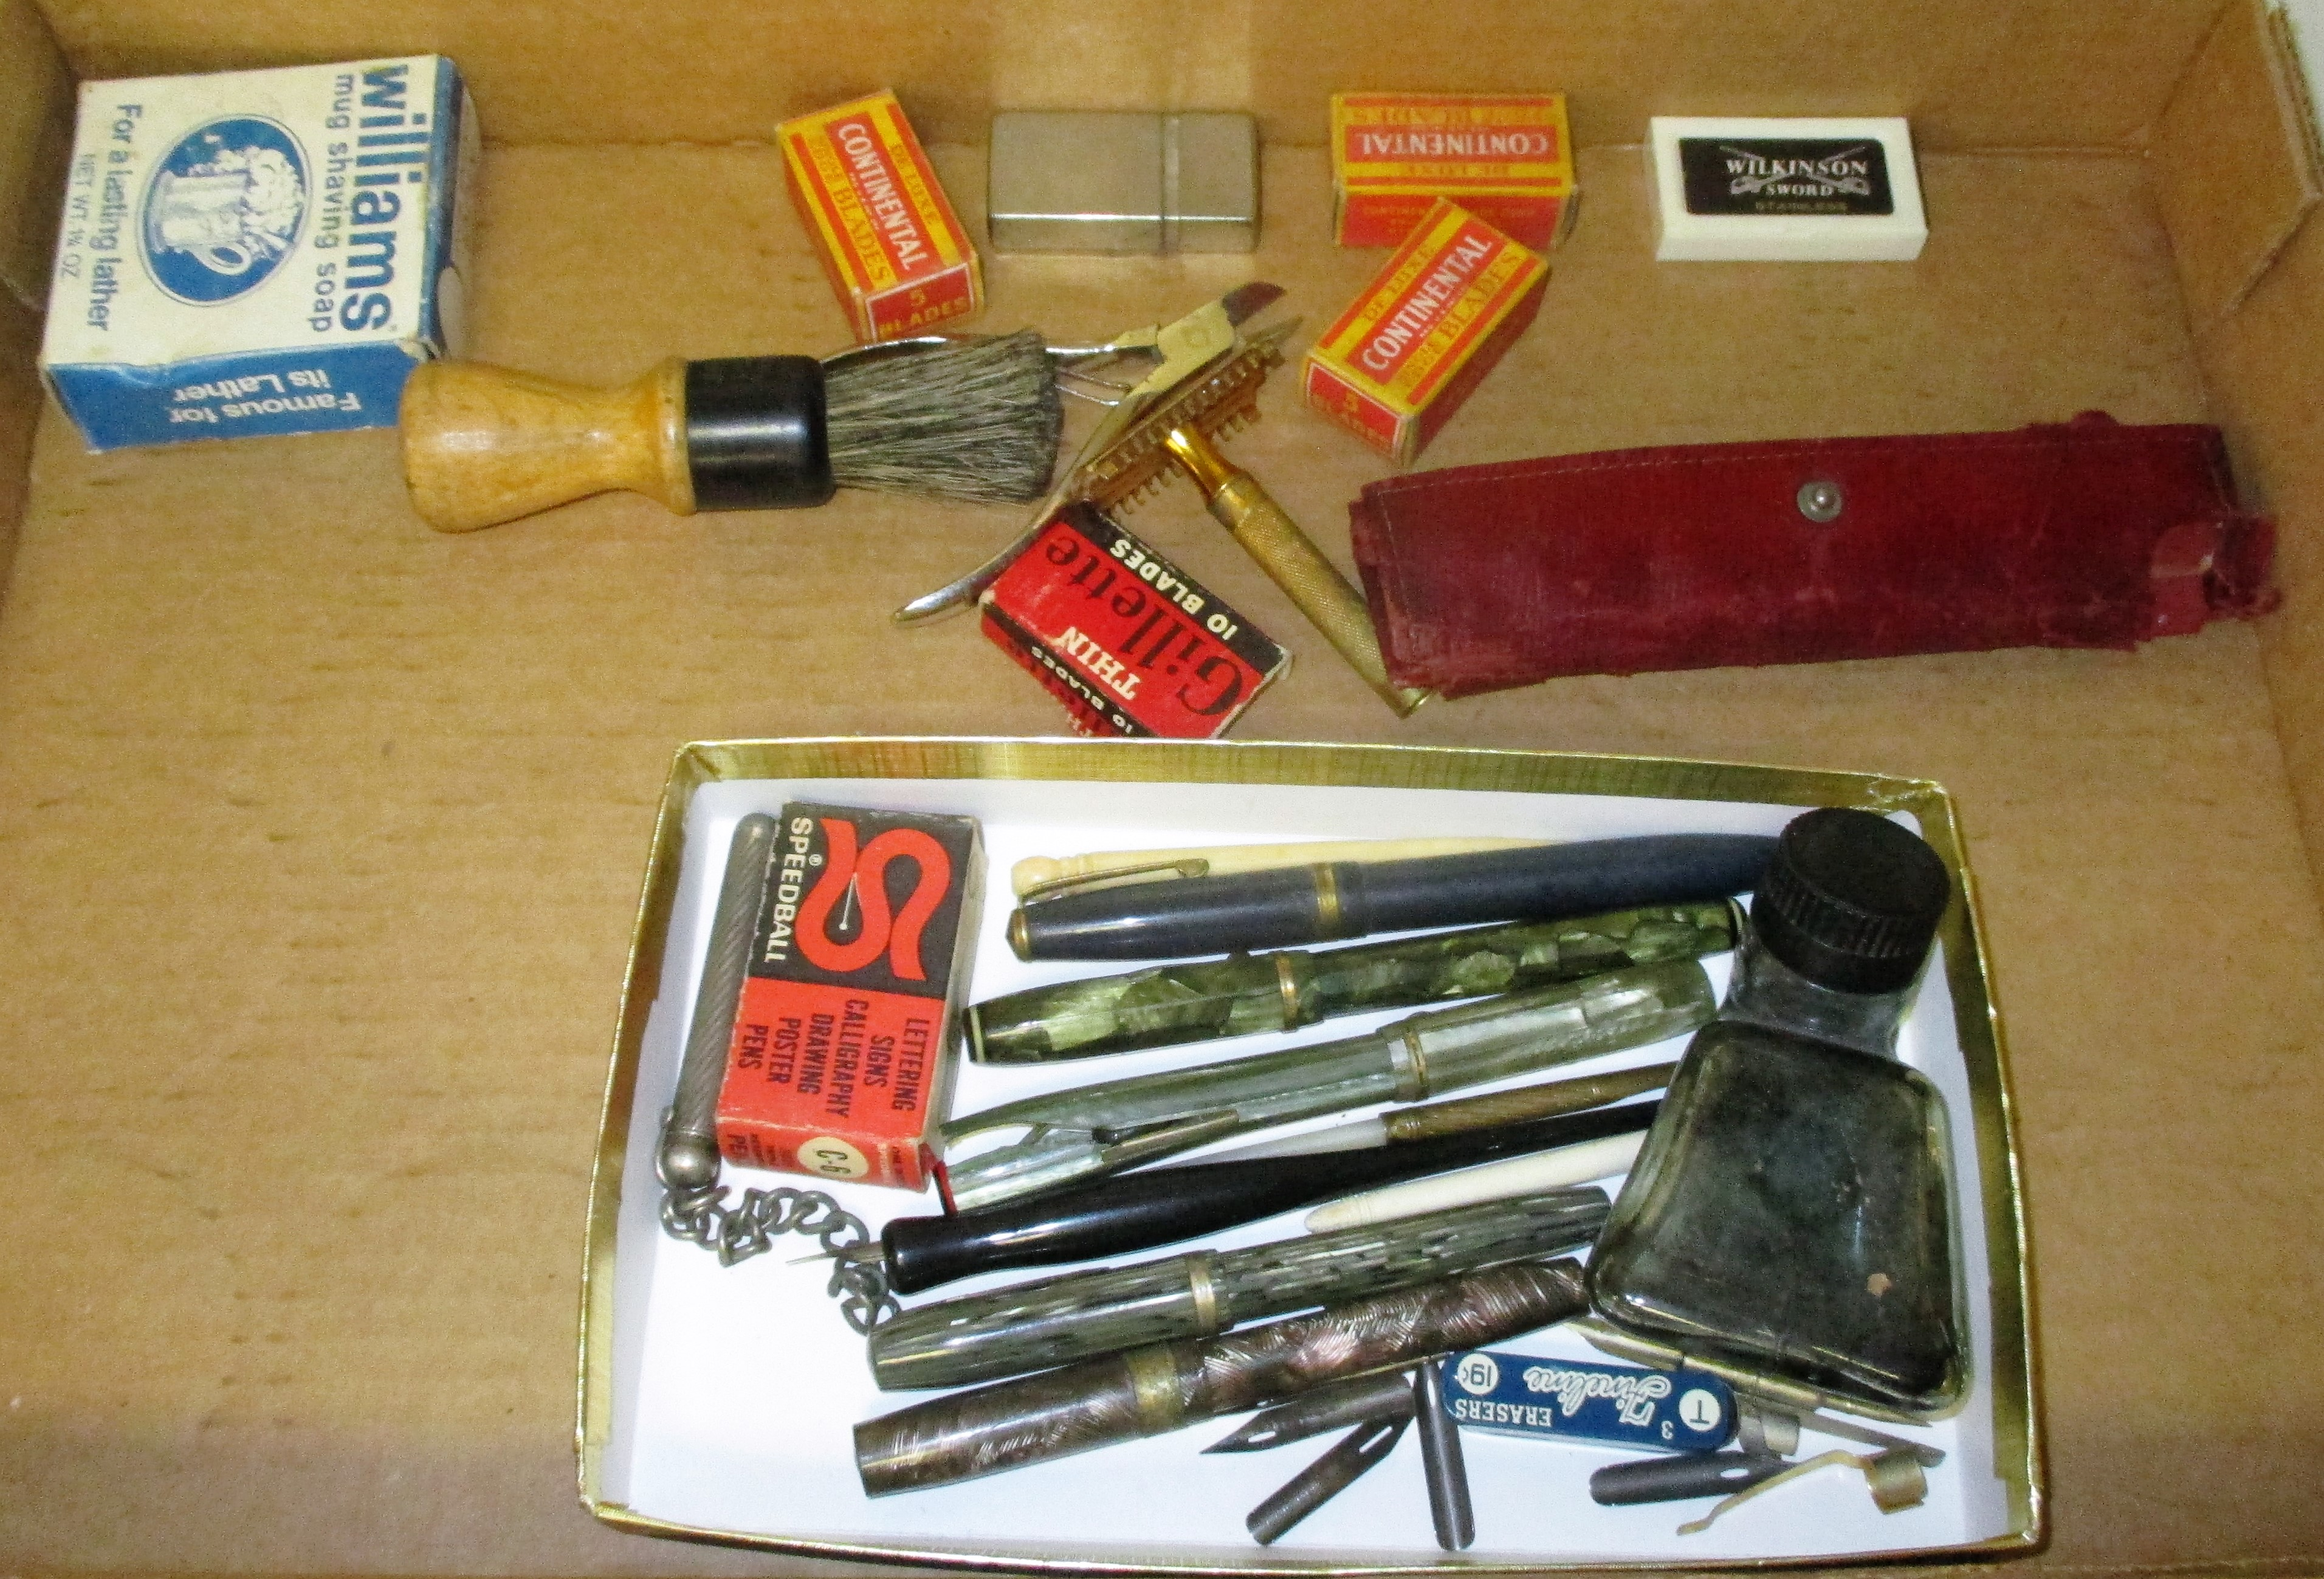 80: Fountain Pens And Shaving Knives